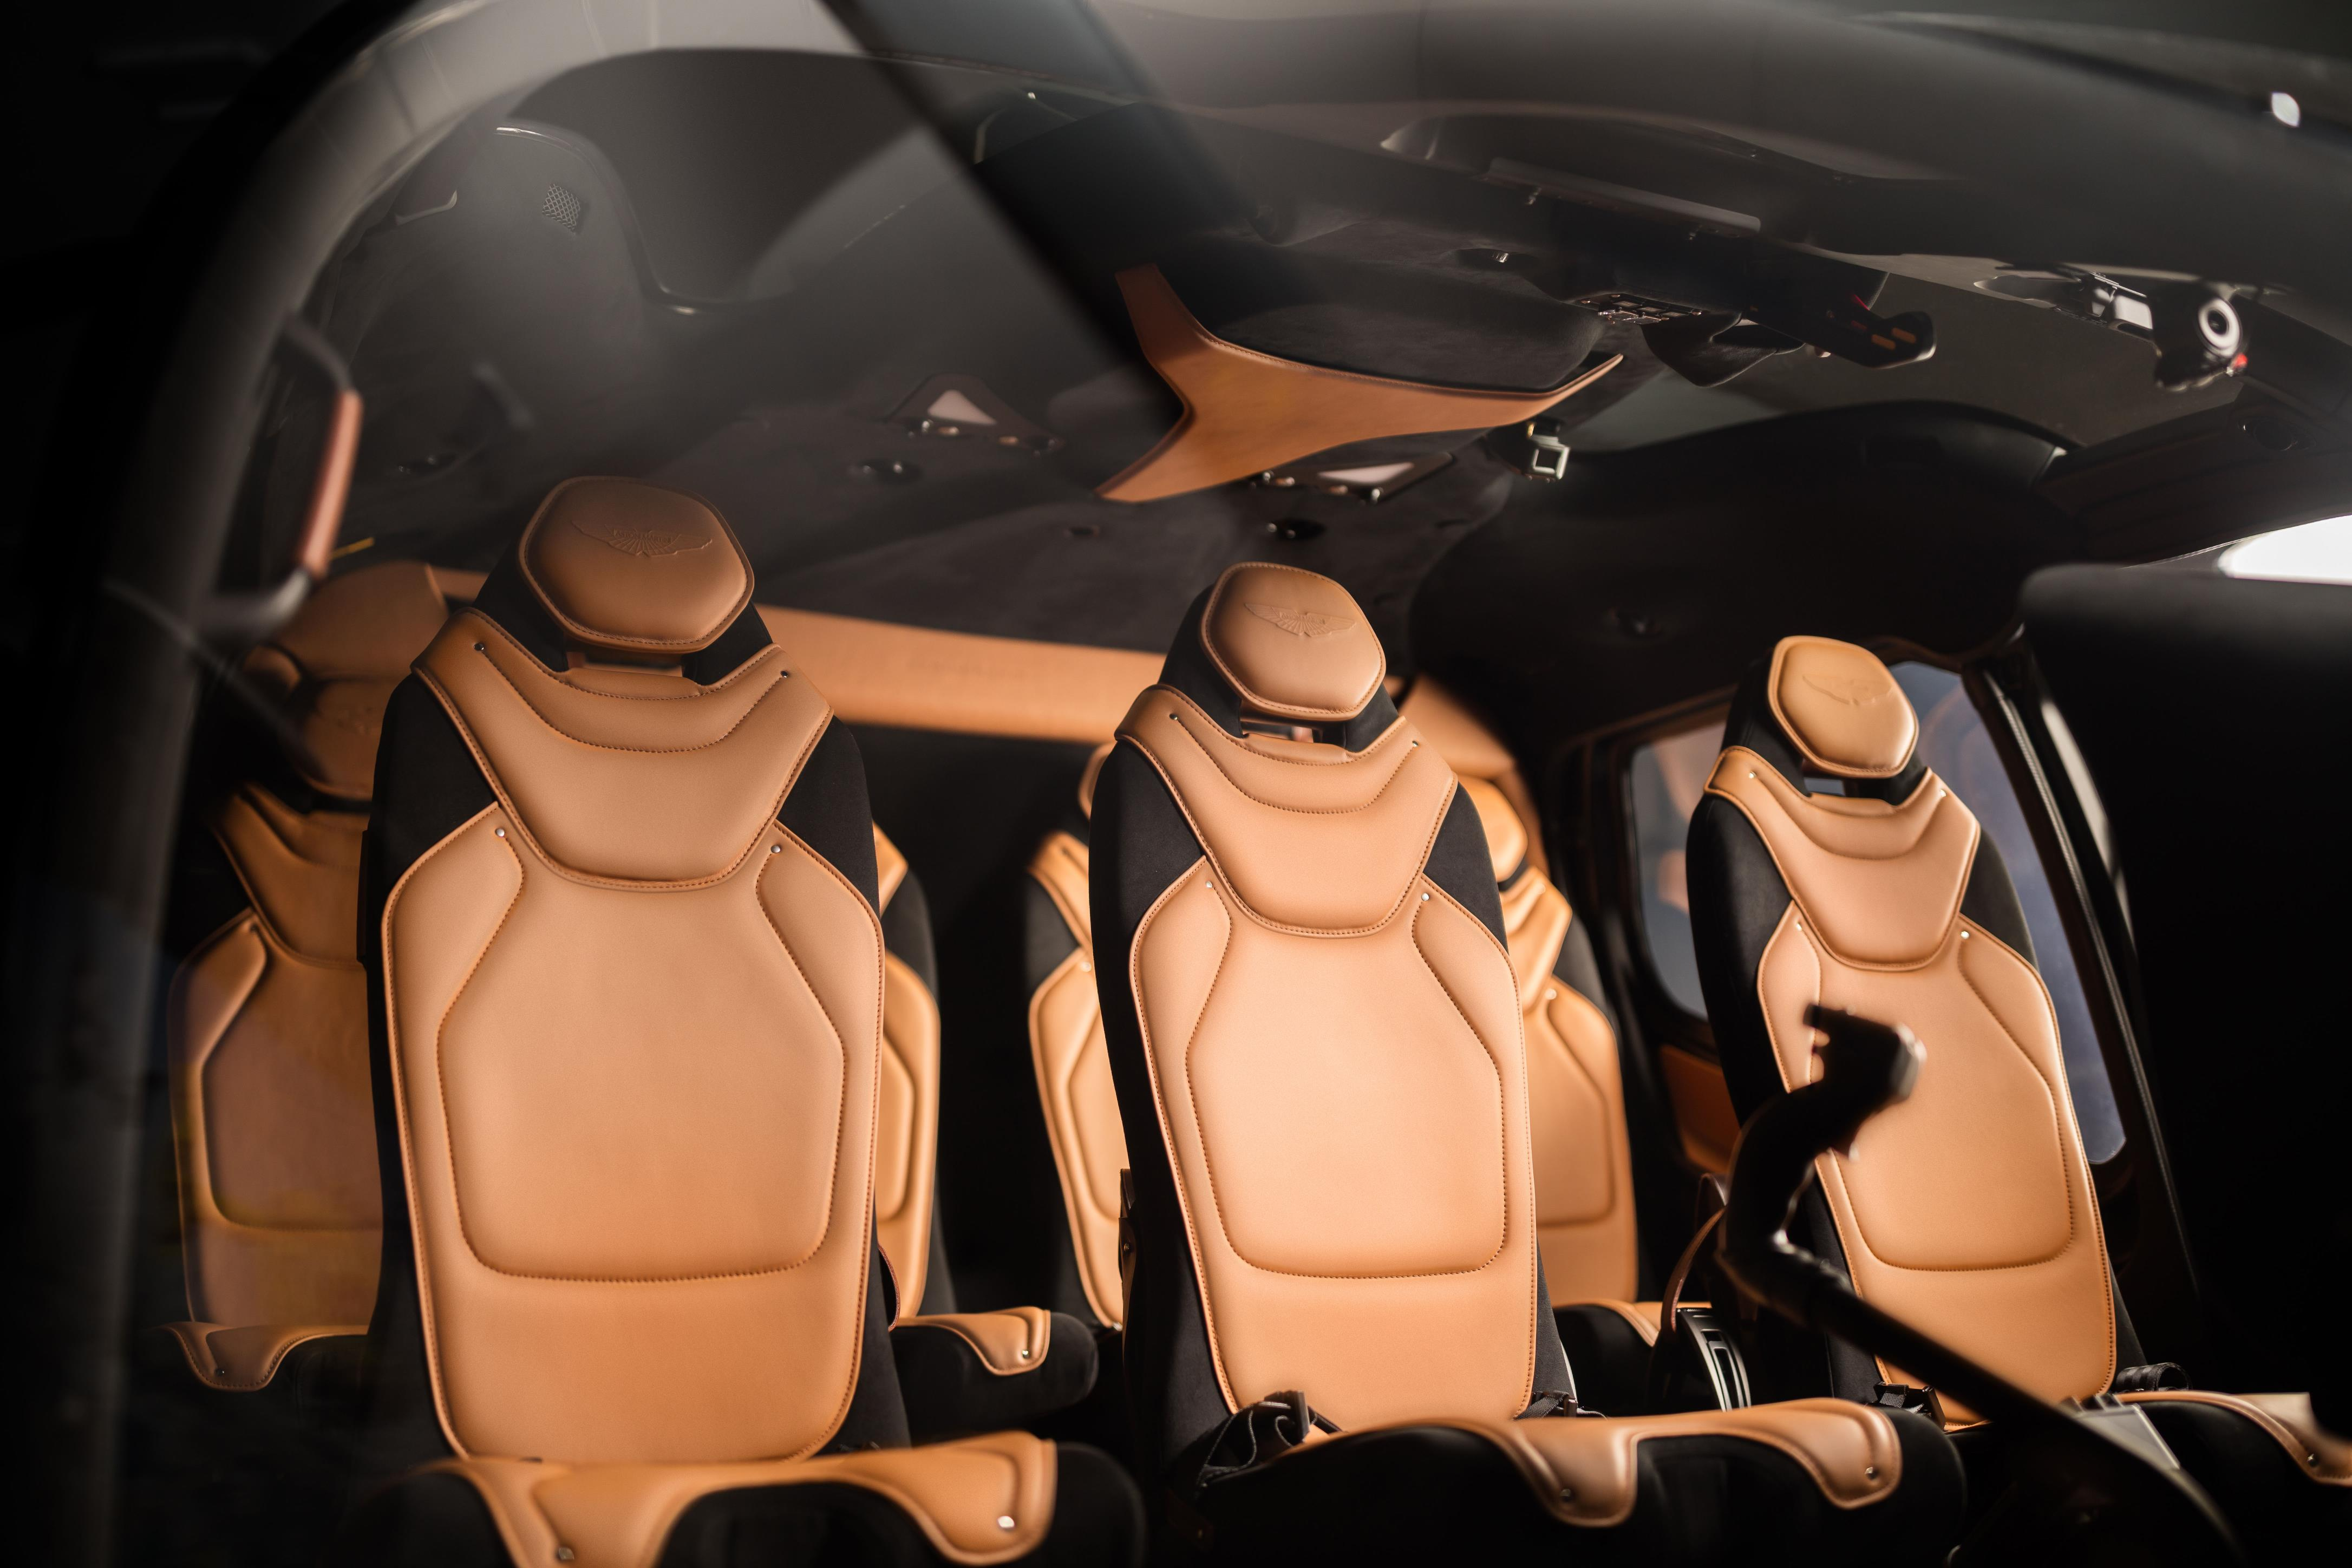 The seats have been trimmed in high-quality leather